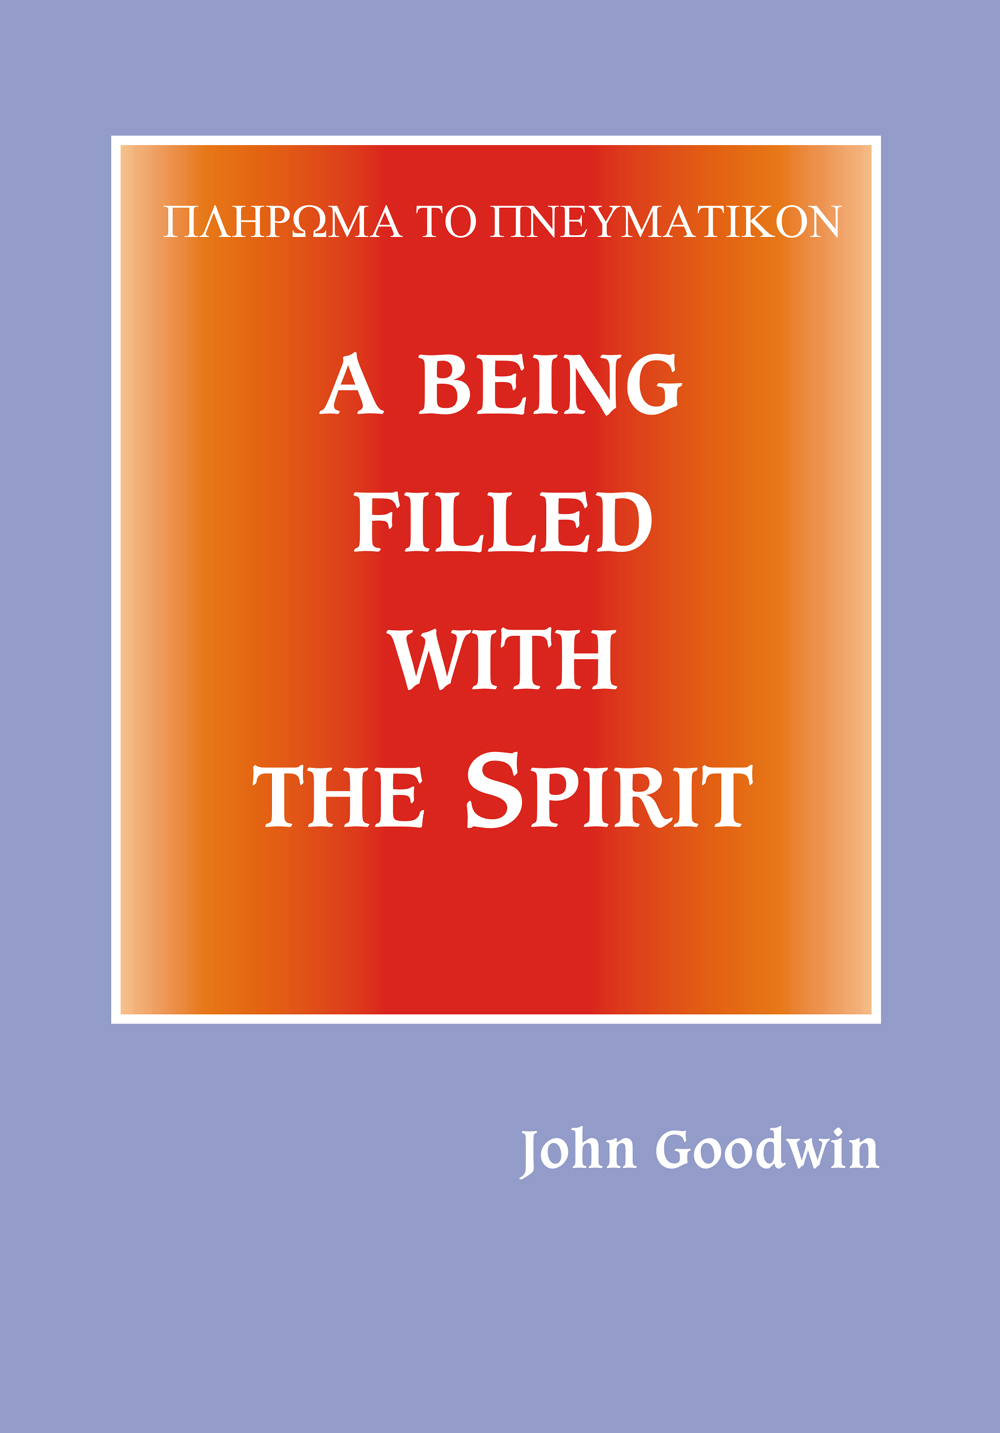 A Being Filled with the Spirit